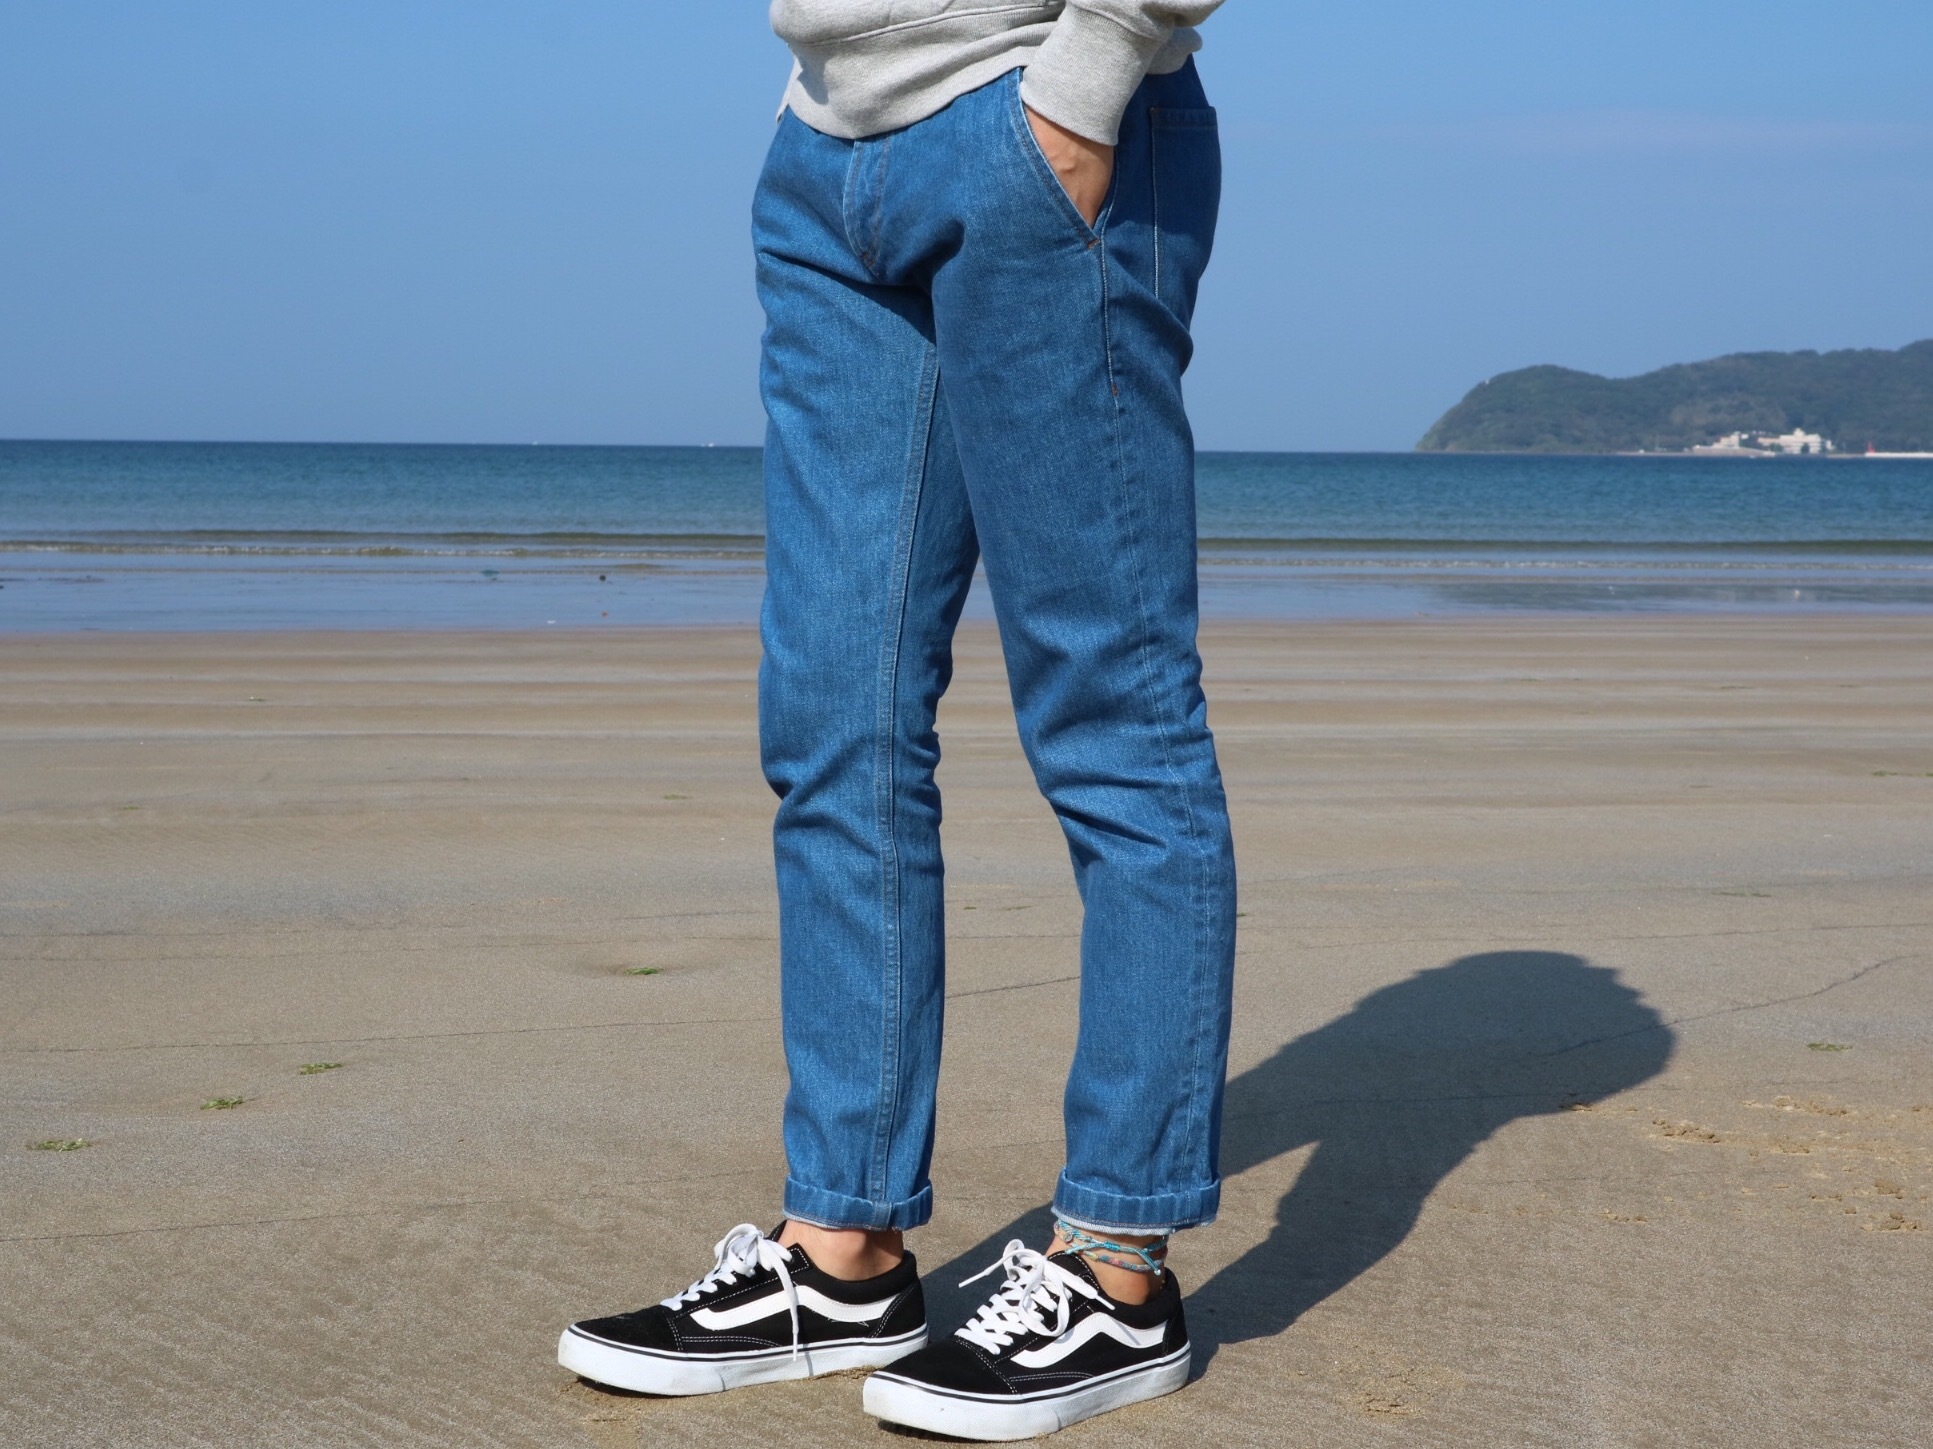 ThreeArrows Slacks Denim(indigo blue)